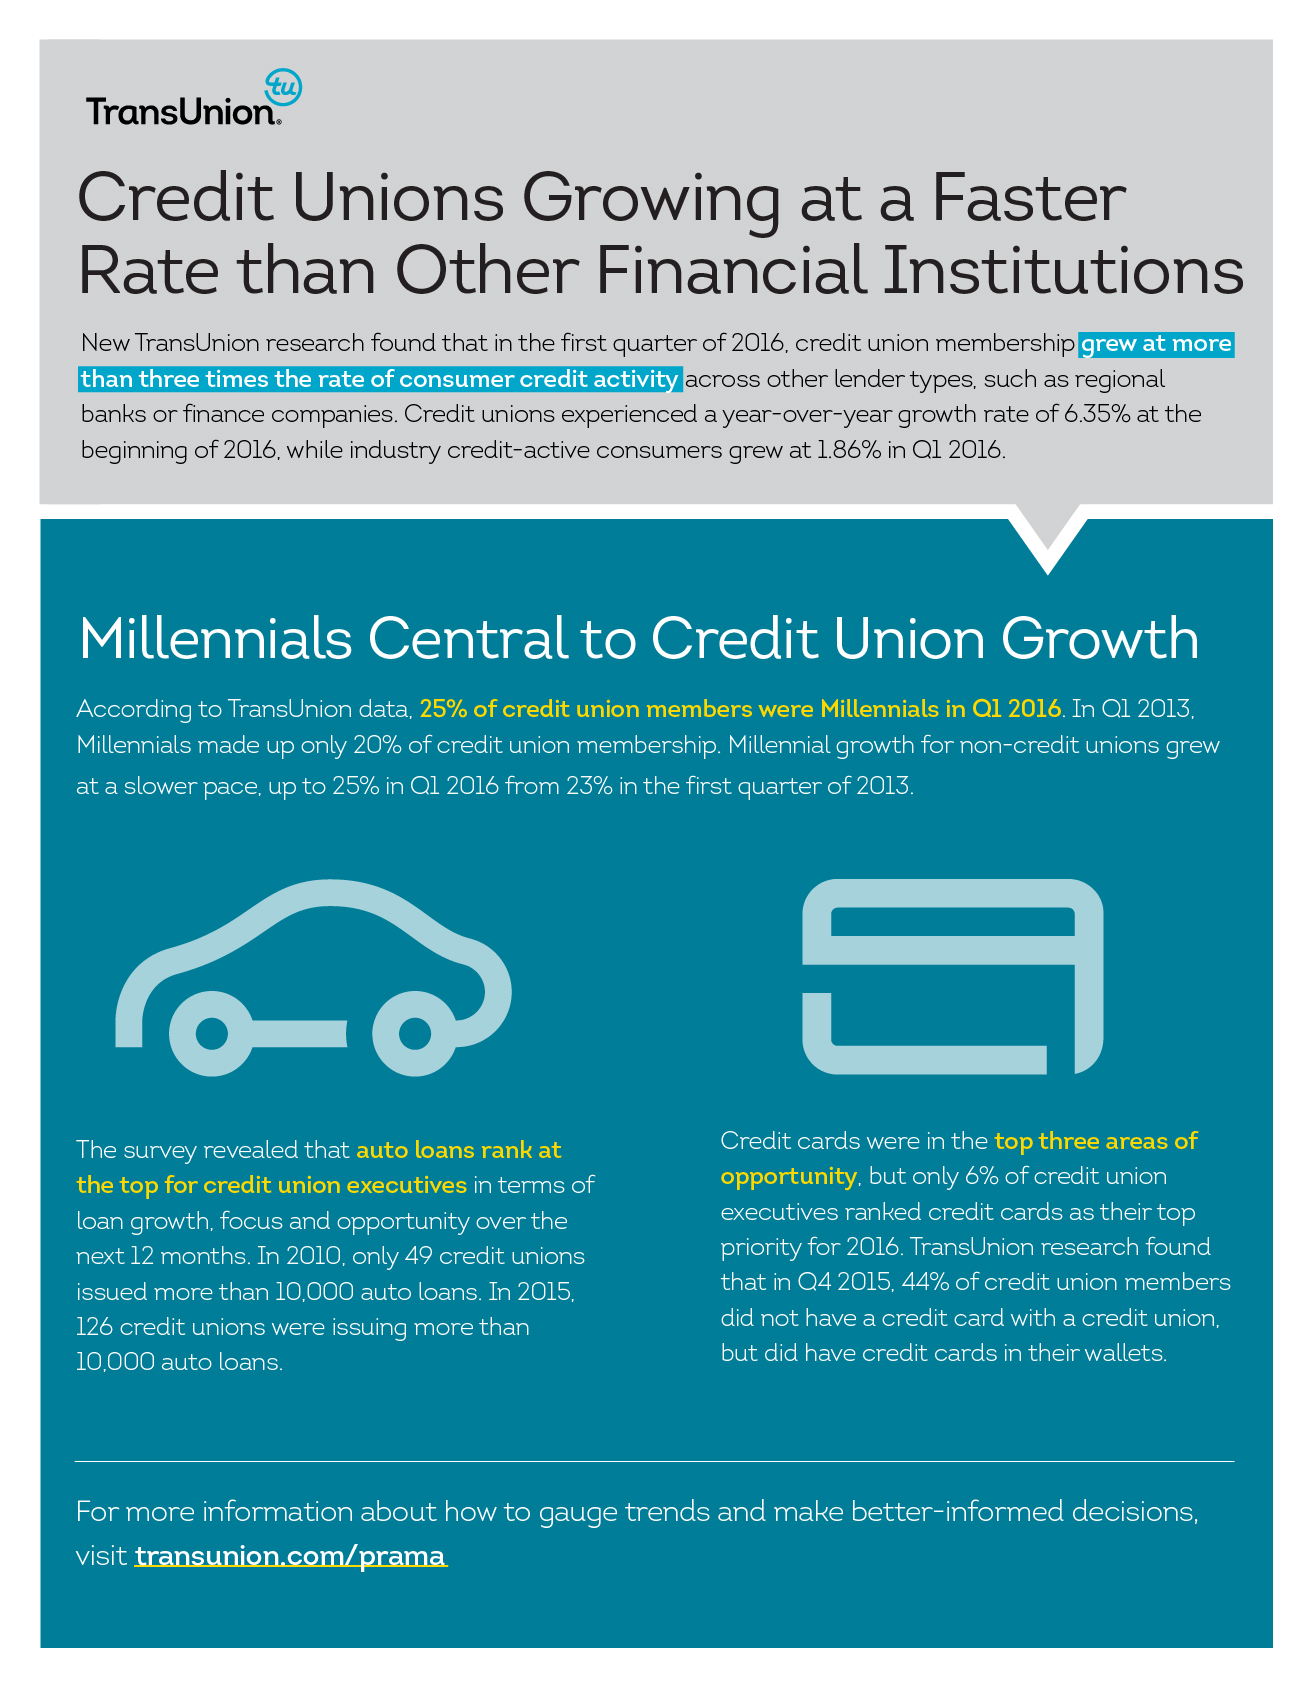 Stunning Or Financial According To A Studyby Meeting Consumer Payment Demand Cuinsight Morethan Three Times That As Credit Union Membership Continues To Climbing At A Rate dpreview Consumer Priority Service